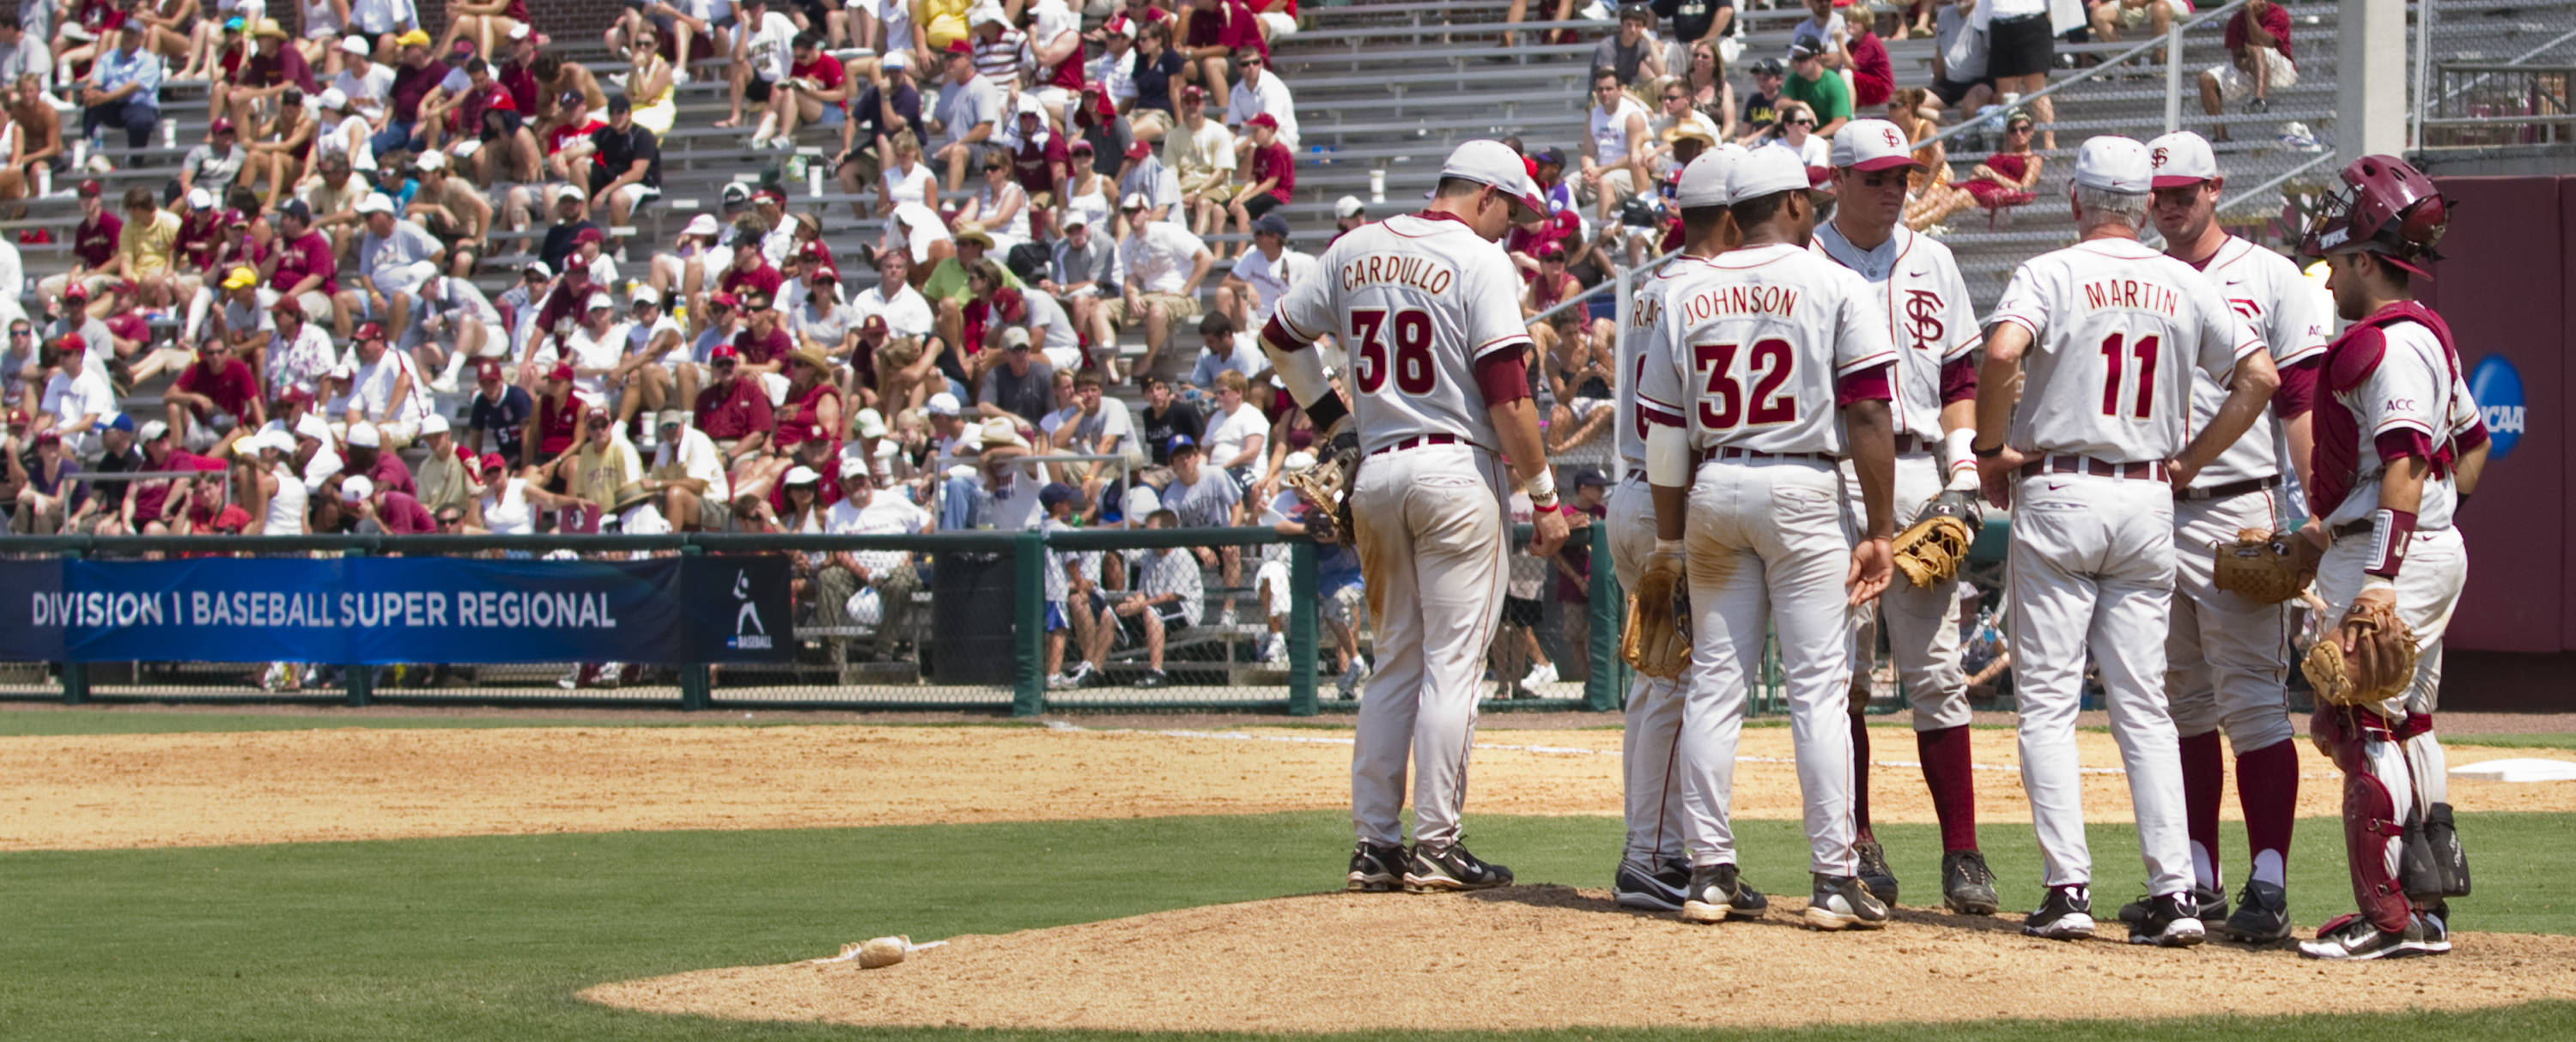 Mike Martin meets with Seminoles on the field during the second game against Vanderbilt.